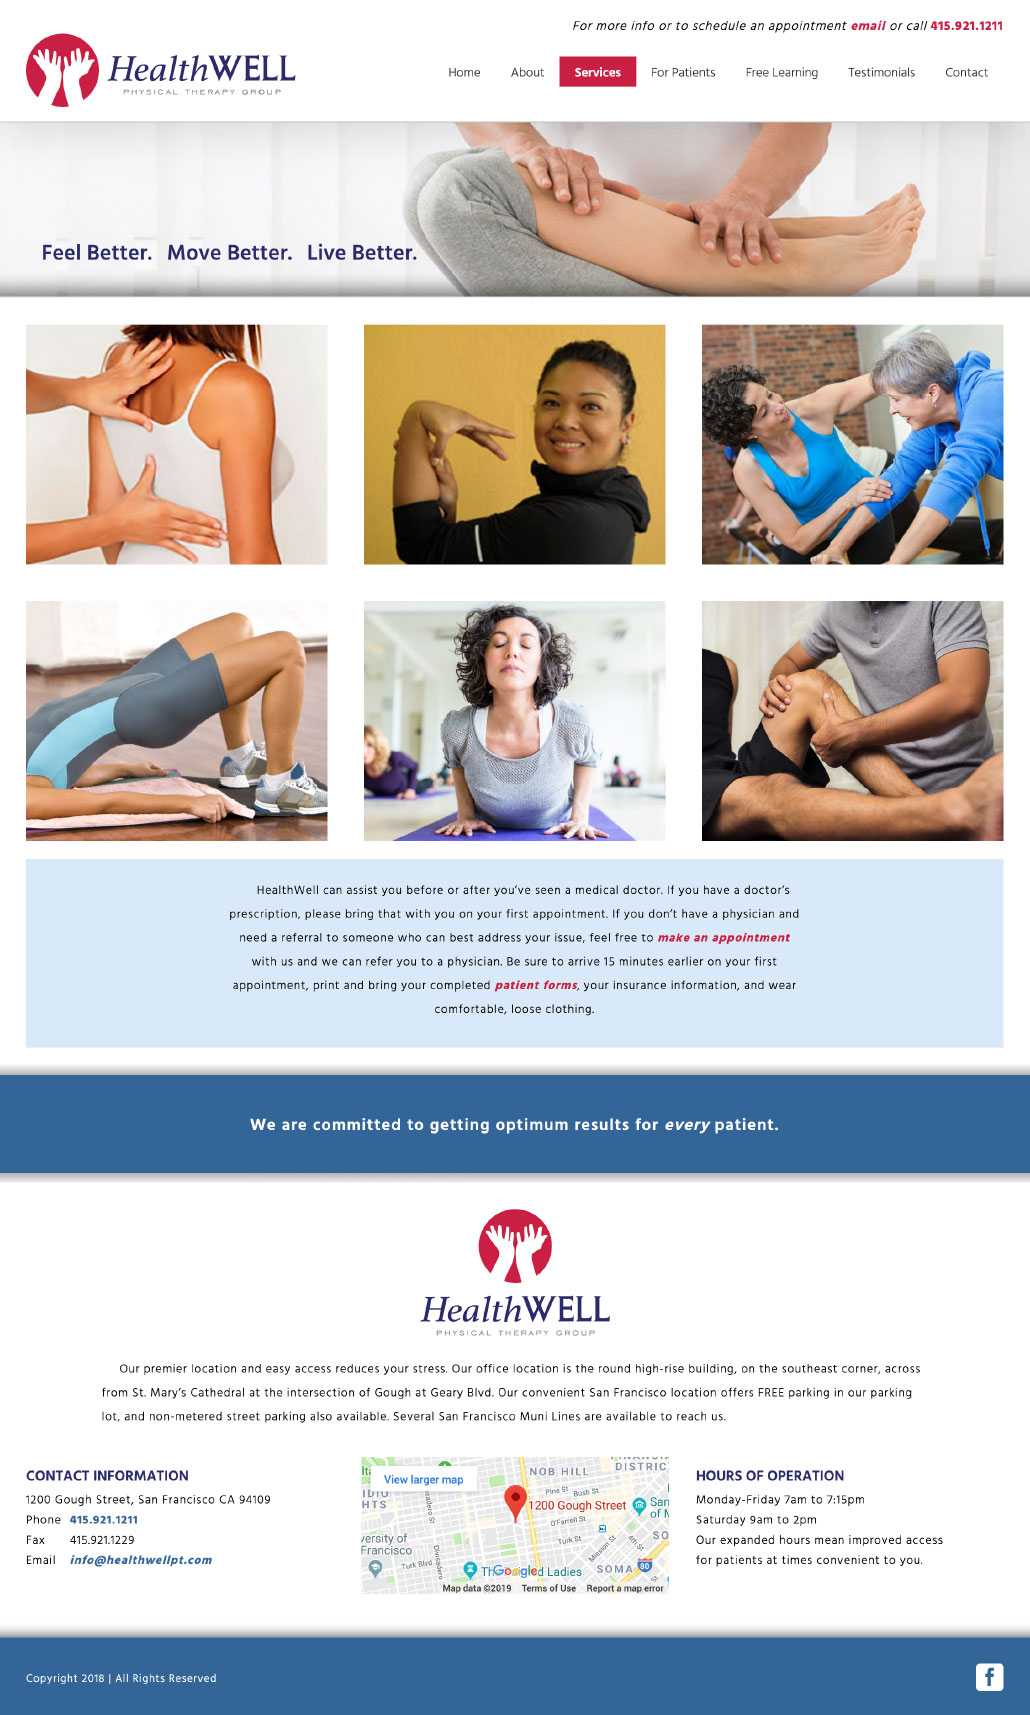 HealthWell Services